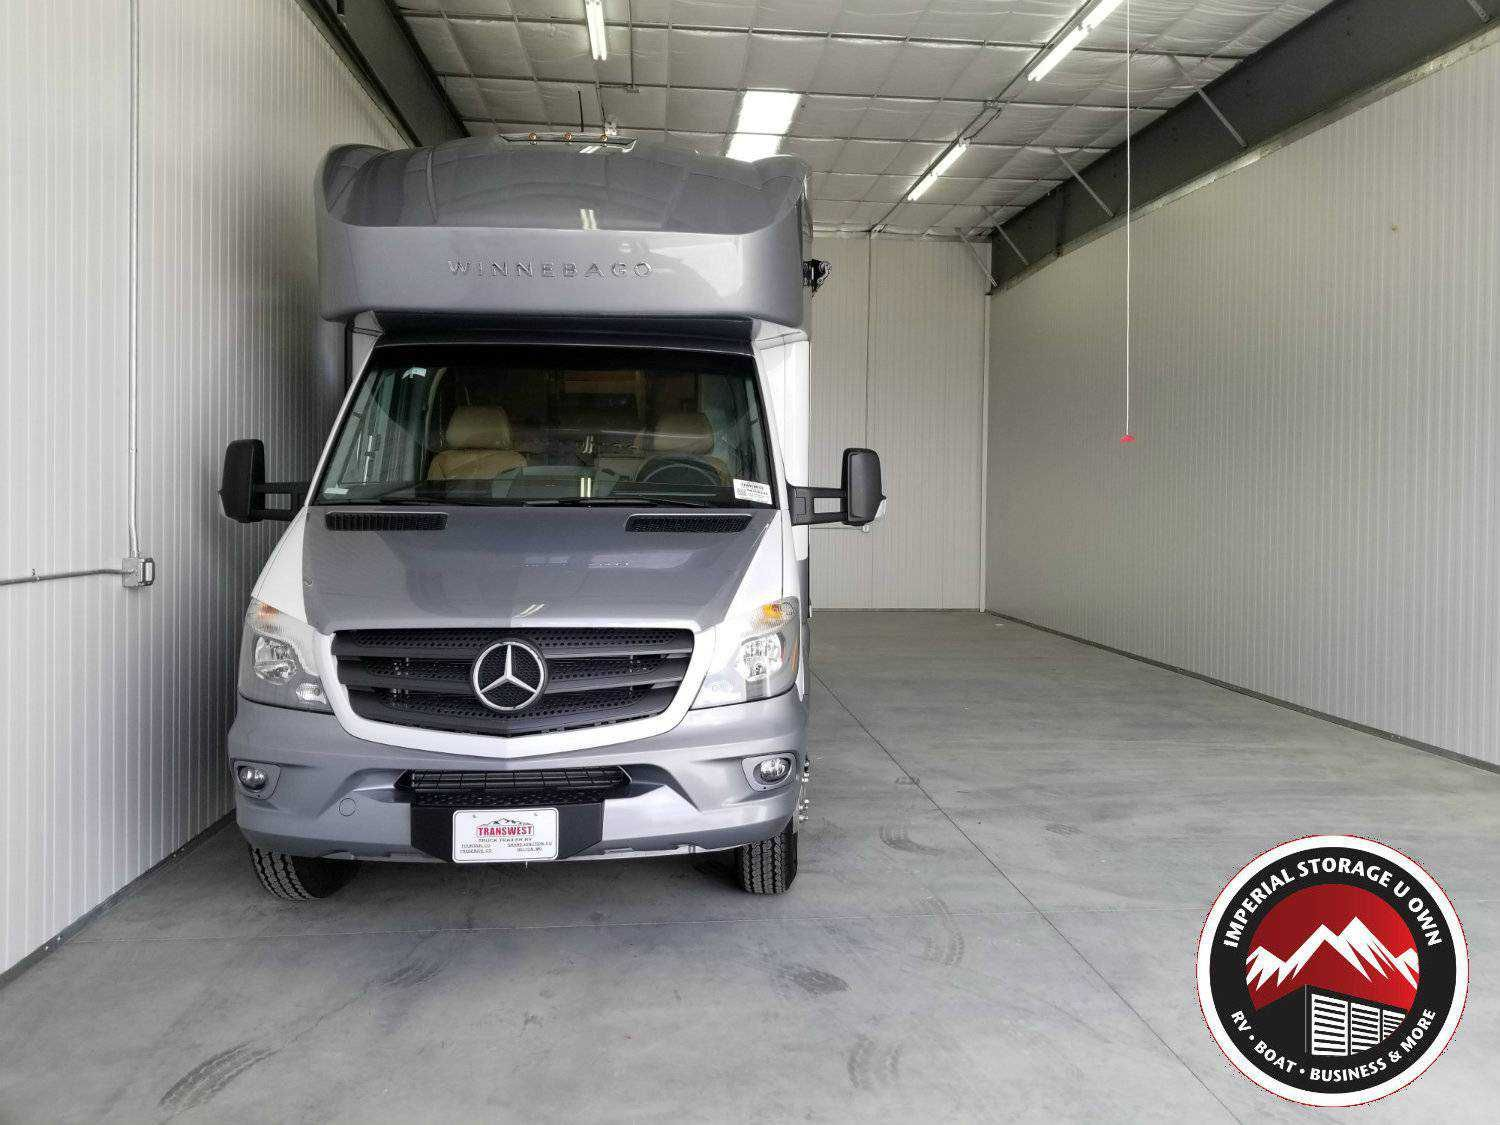 Whether You Want To Change Your Lifestyle Keep Your Valuable Items Intact Declutter Your Living Space Or Want To Purs Storage Condo Luxury Storage Rv Storage